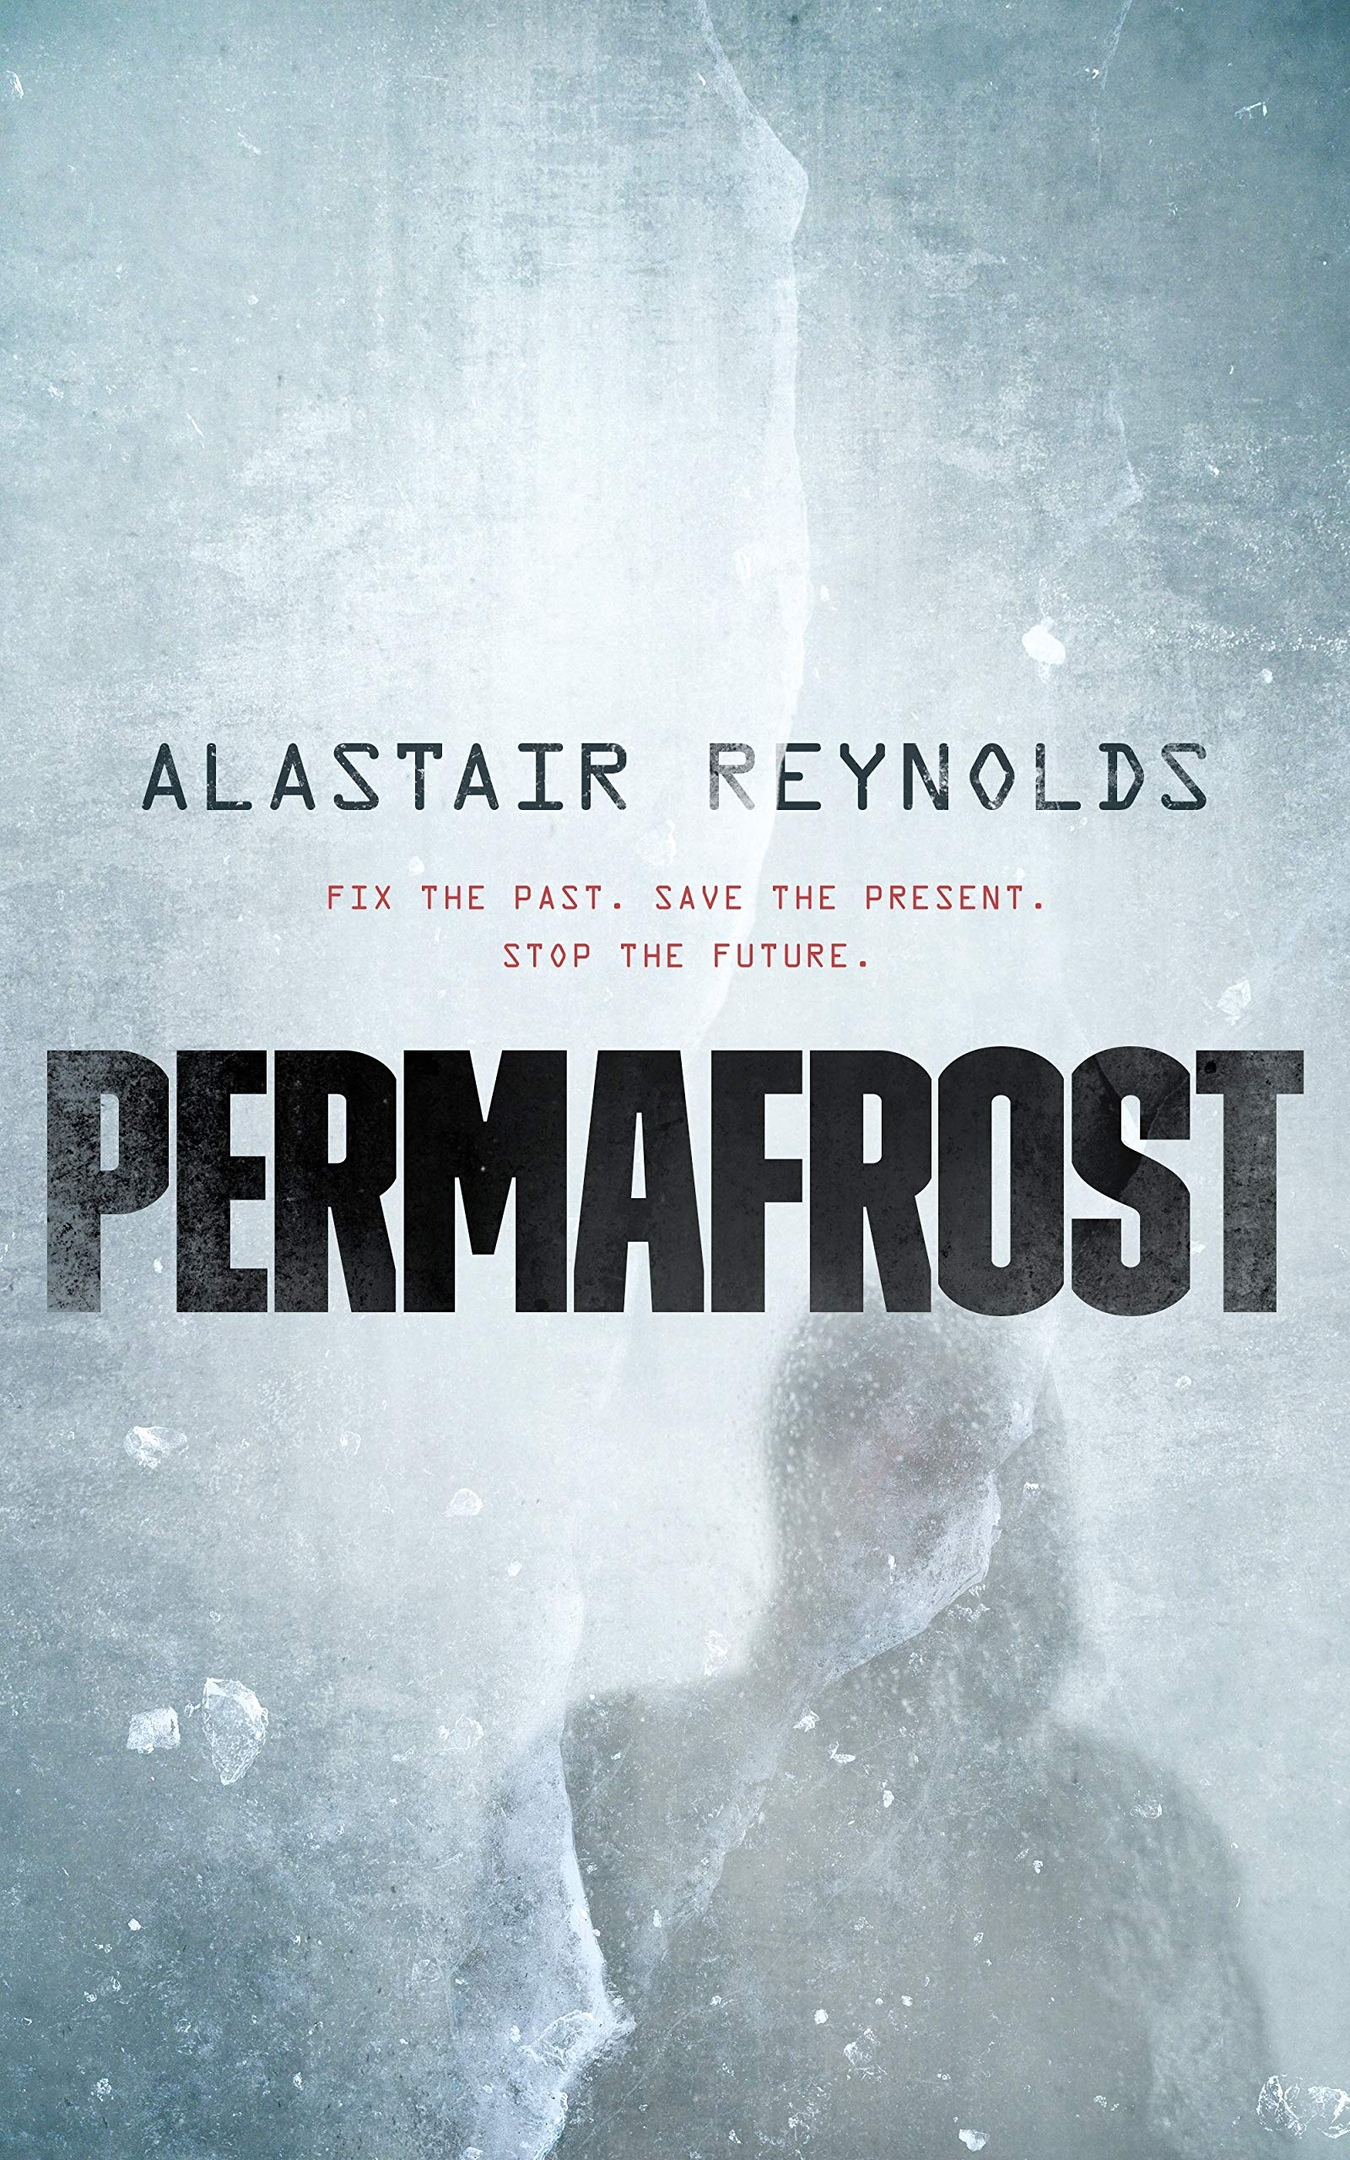 Alastair Reynolds – Permafrost Genre: Author: Fix